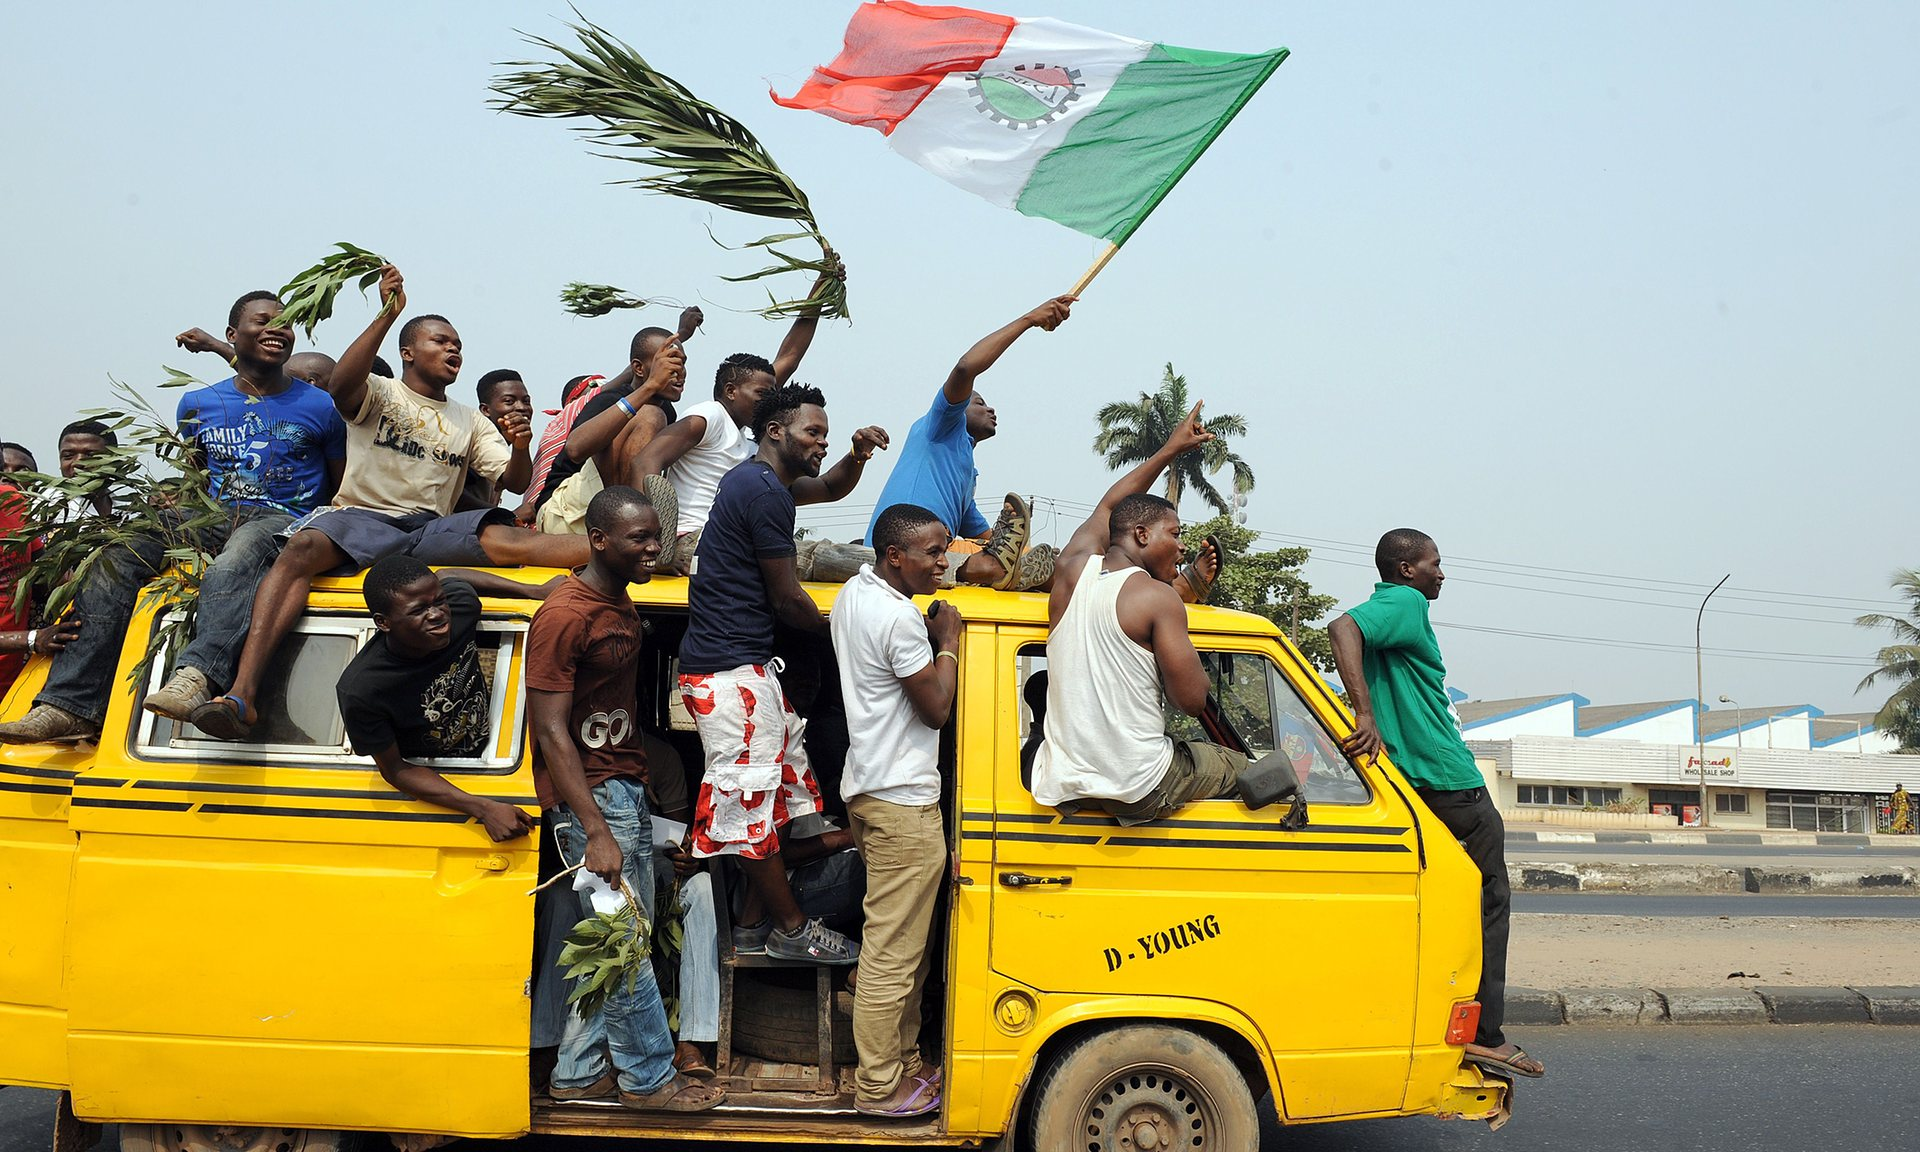 A Lagos bus or molue full of people.